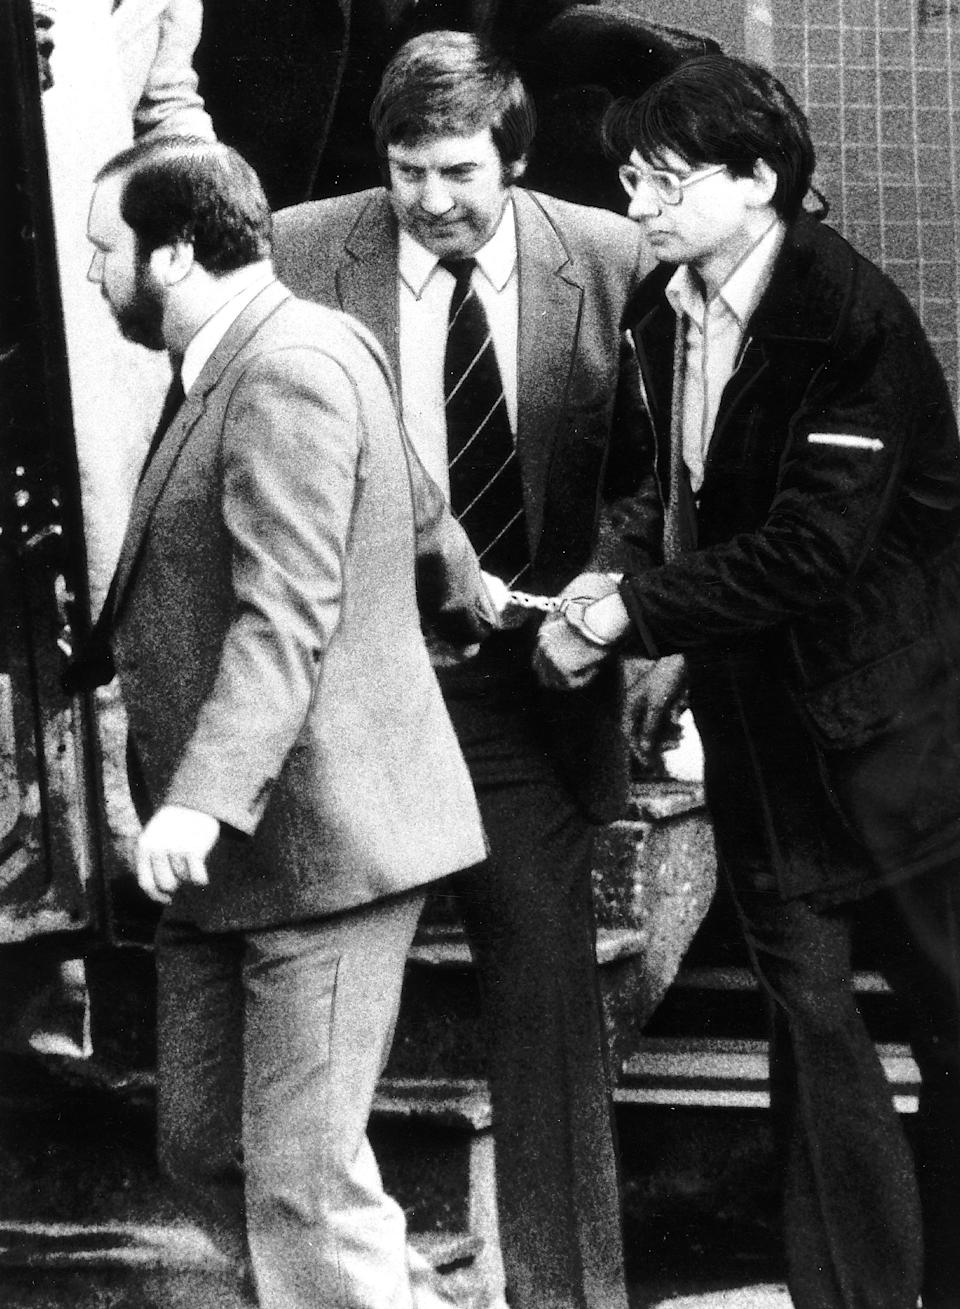 Crime Dennis Nilsen The house of horrors killer who butchered 15 young men being led from prison van by police. (Photo by Daily Mirror/Mirrorpix/Getty Images)